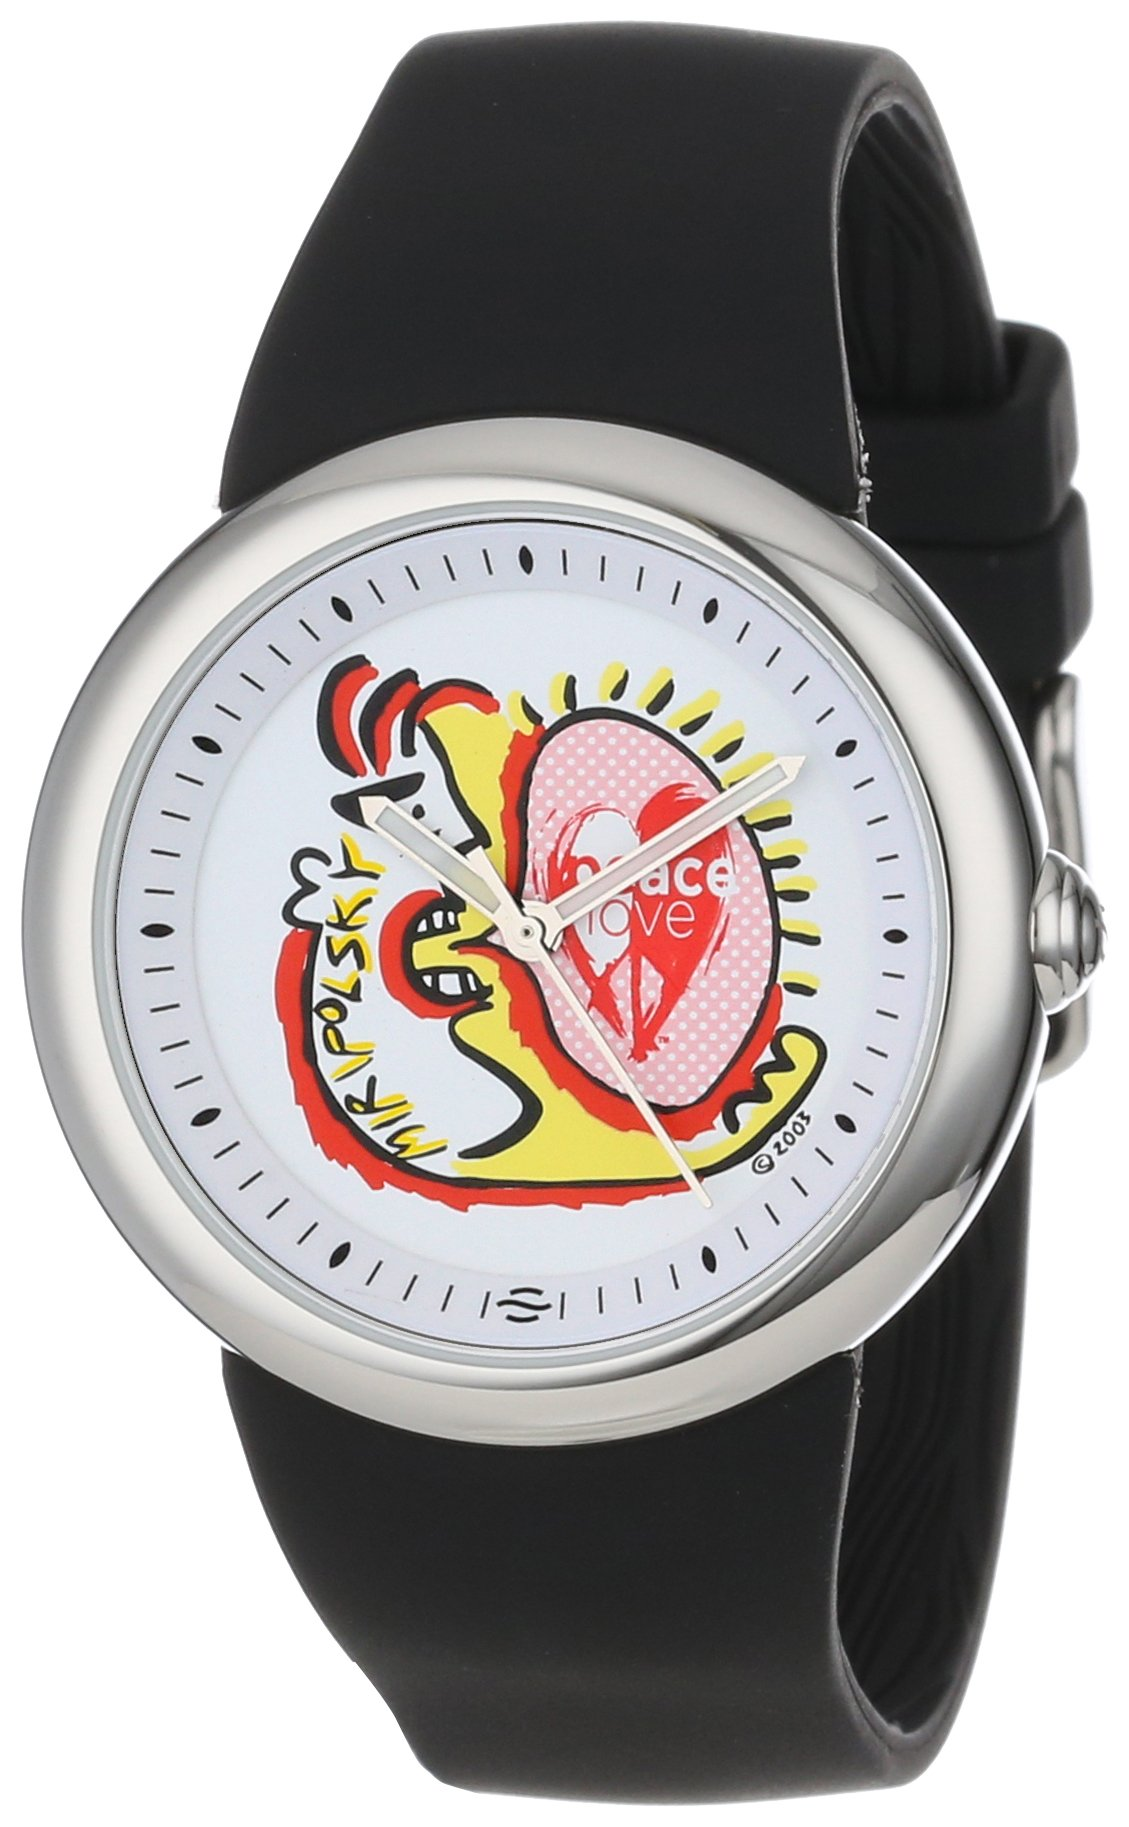 PeaceLove Unisex F36S-PL-B  Round Stainless Steel Black Silicone Strap and ''Miripolsky'' Art Dial Watch